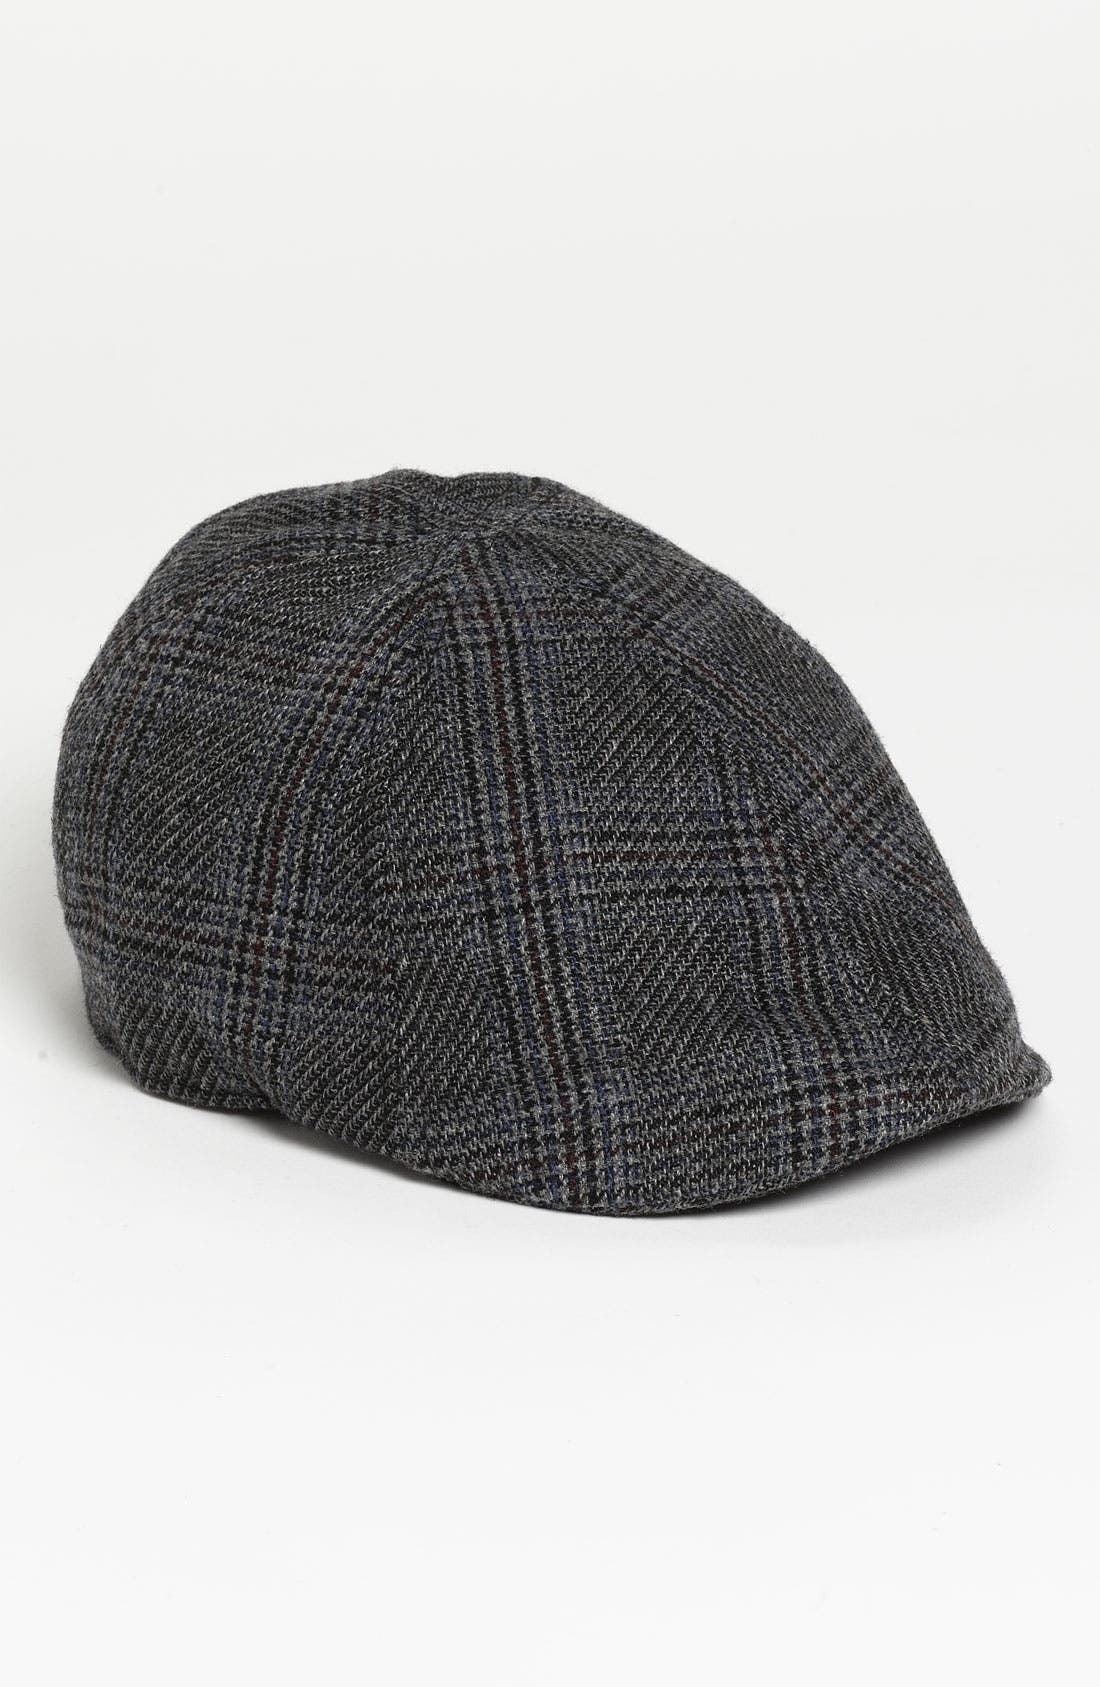 Main Image - Free Authority Houndstooth Plaid Duckbill Ivy Cap